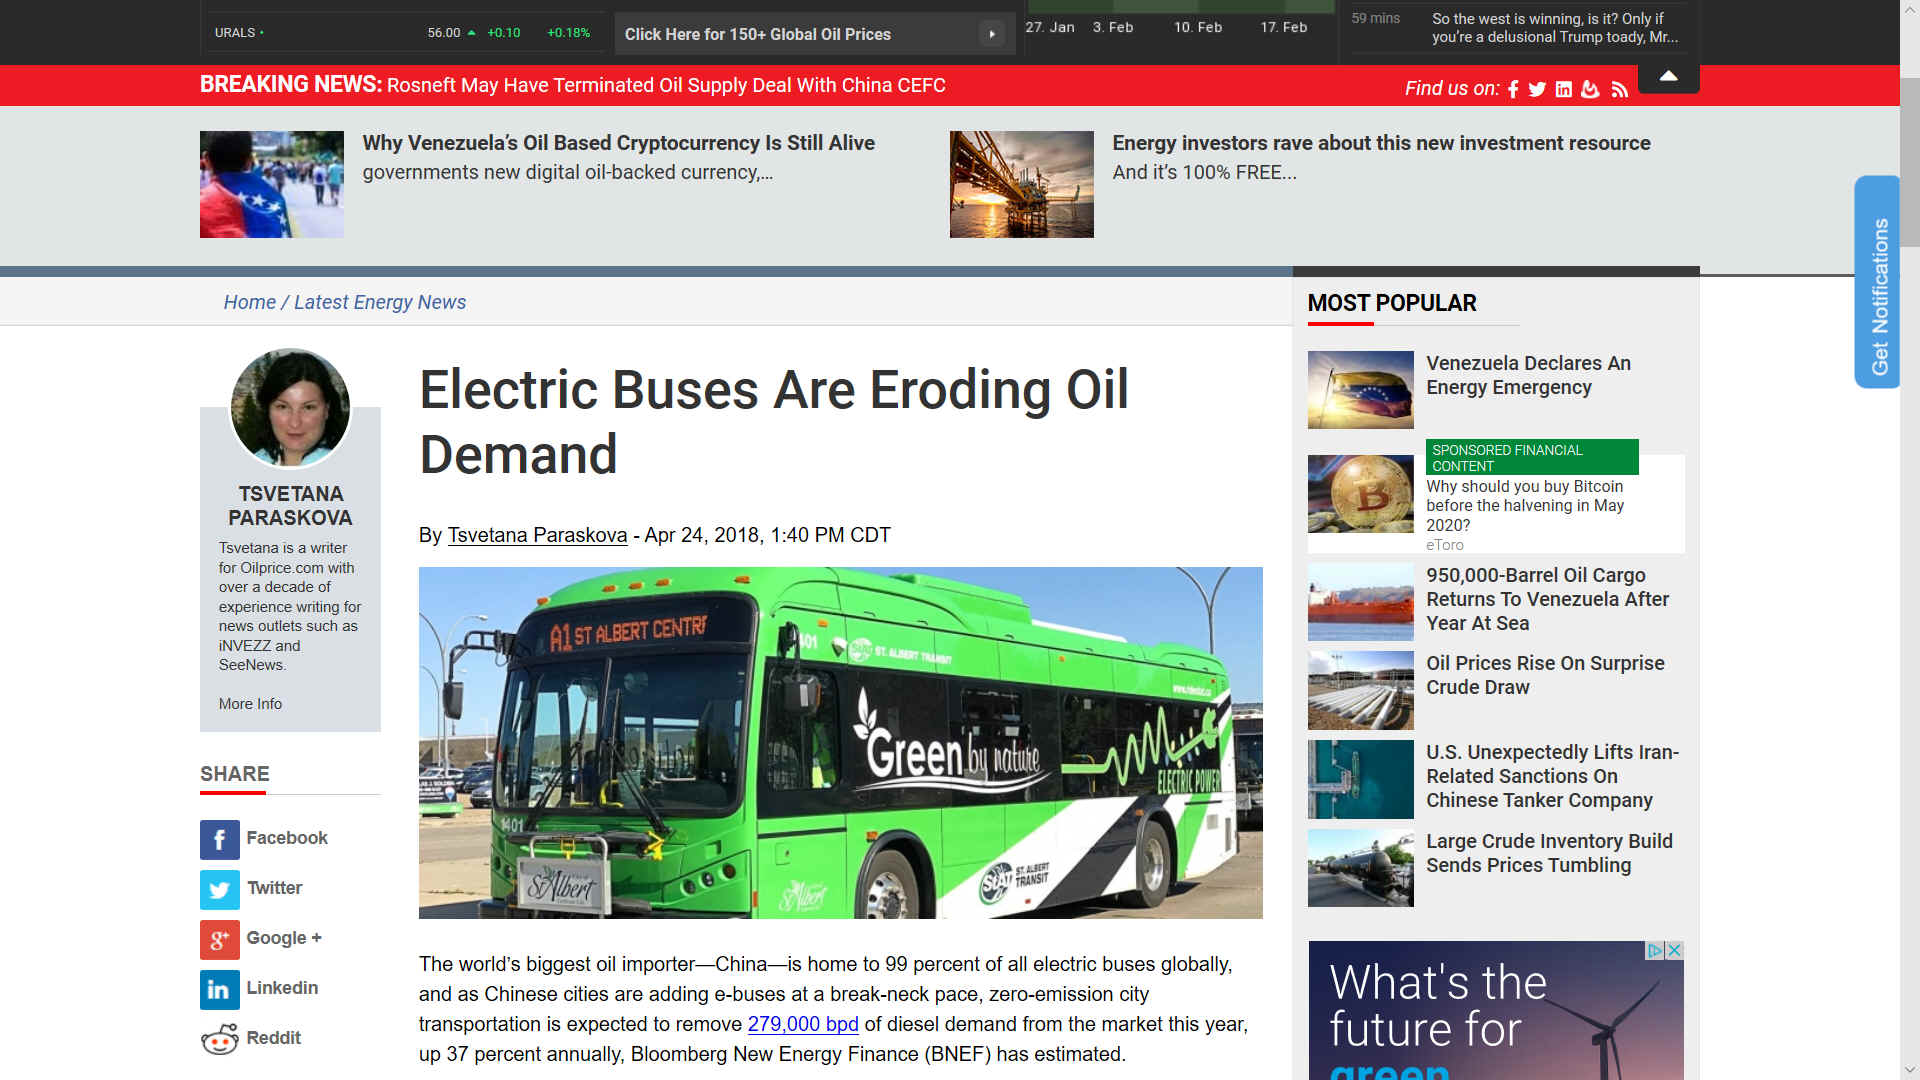 BYD electric buses in China